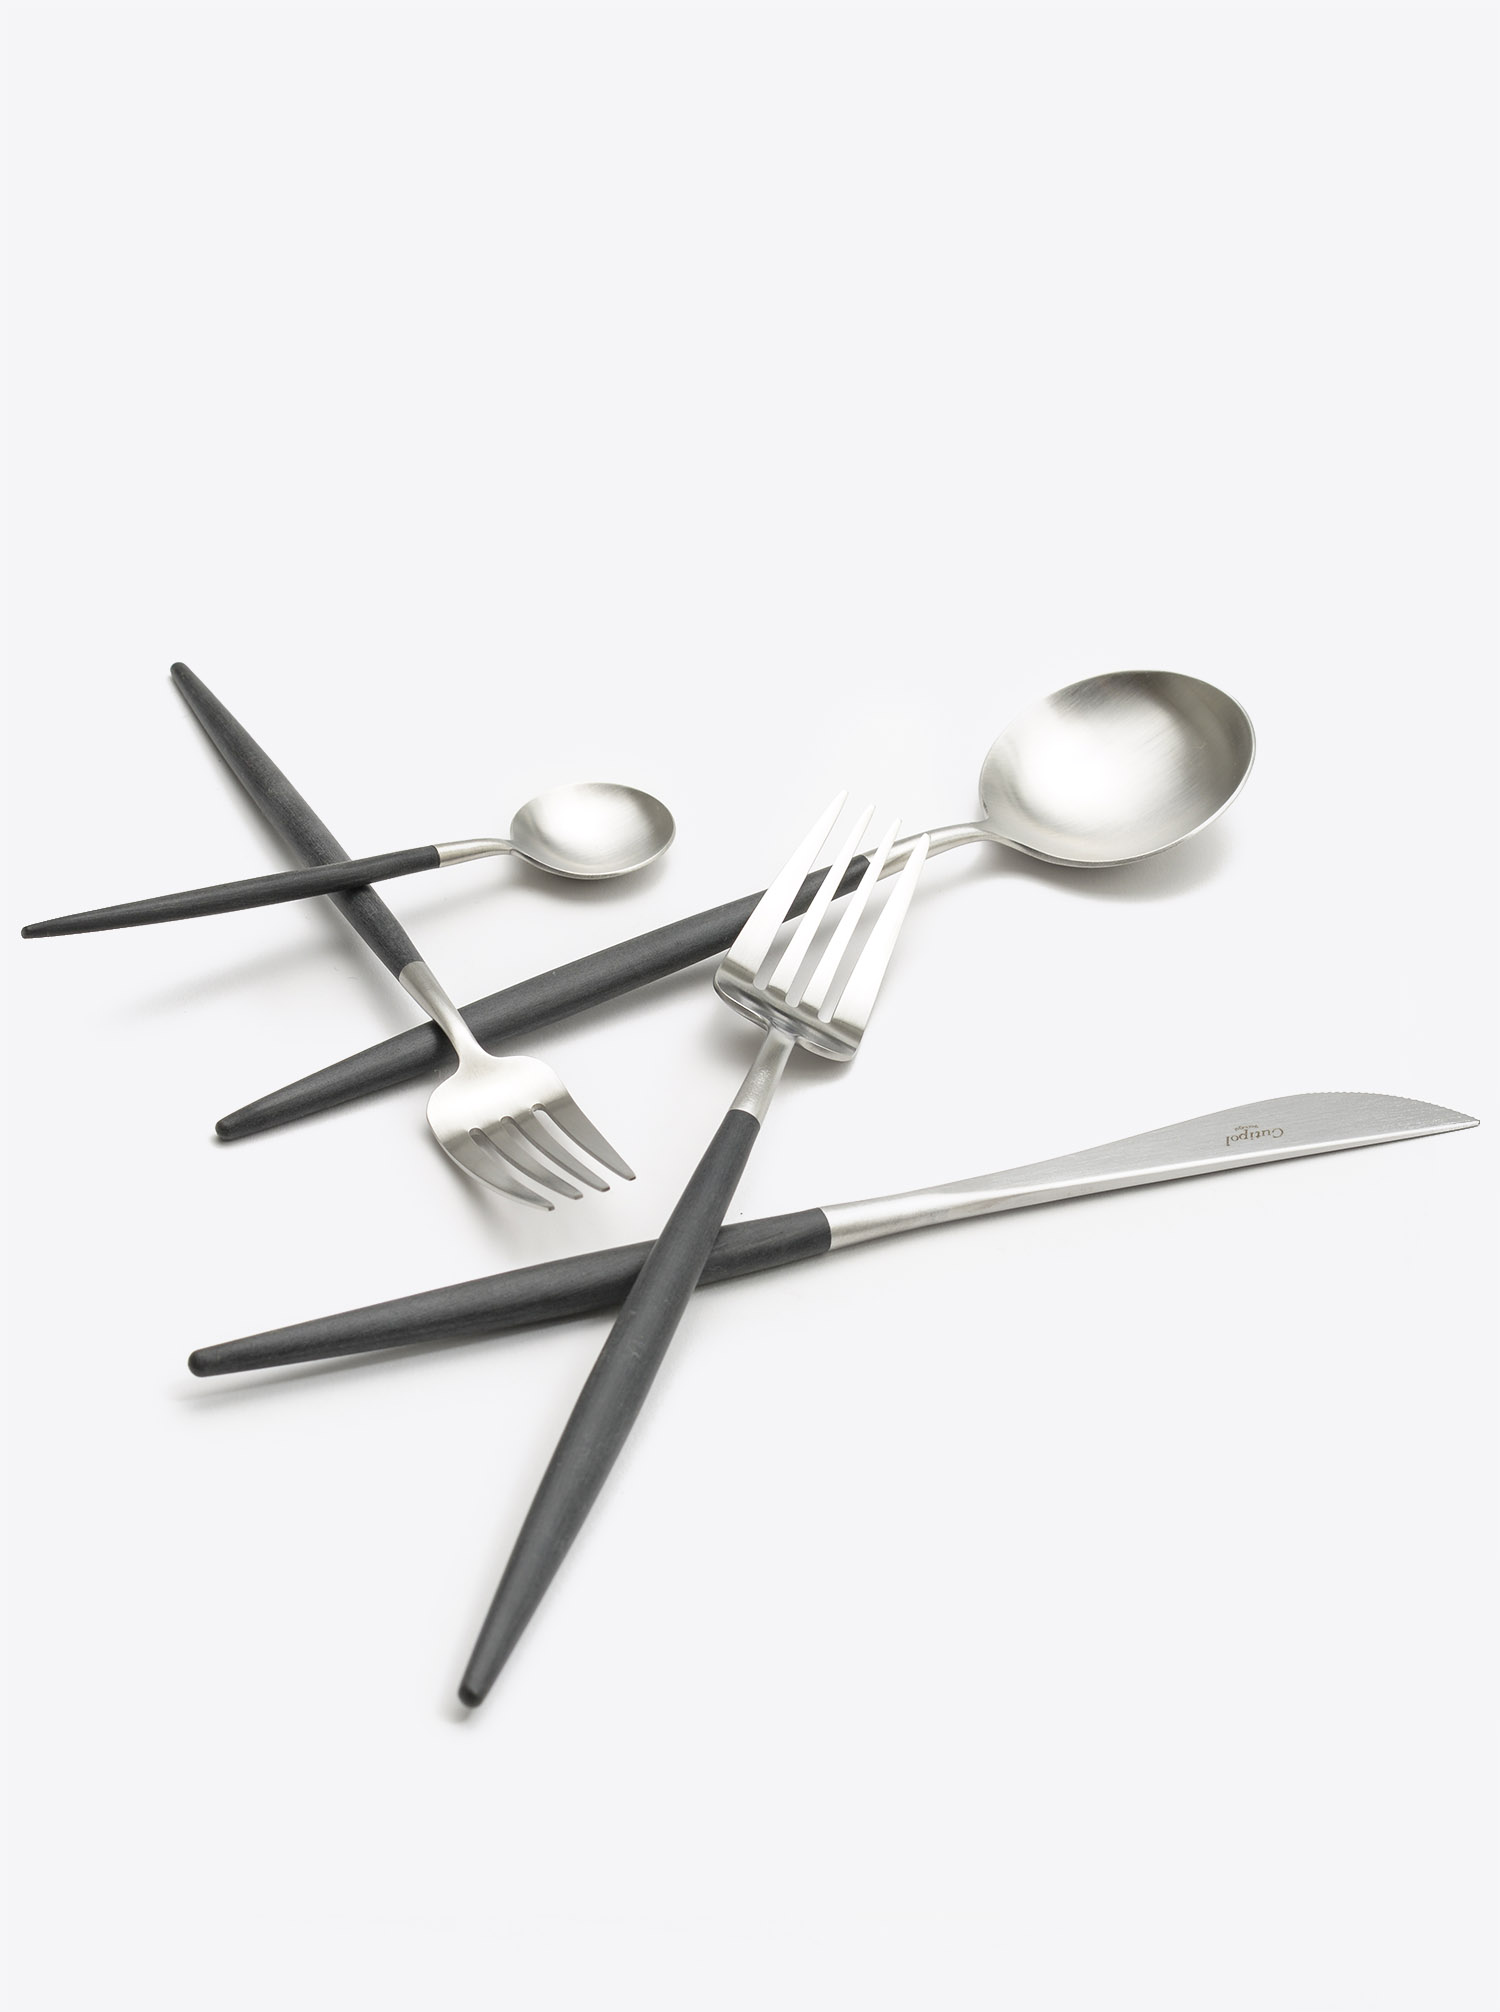 Cutlery Set Goa steel